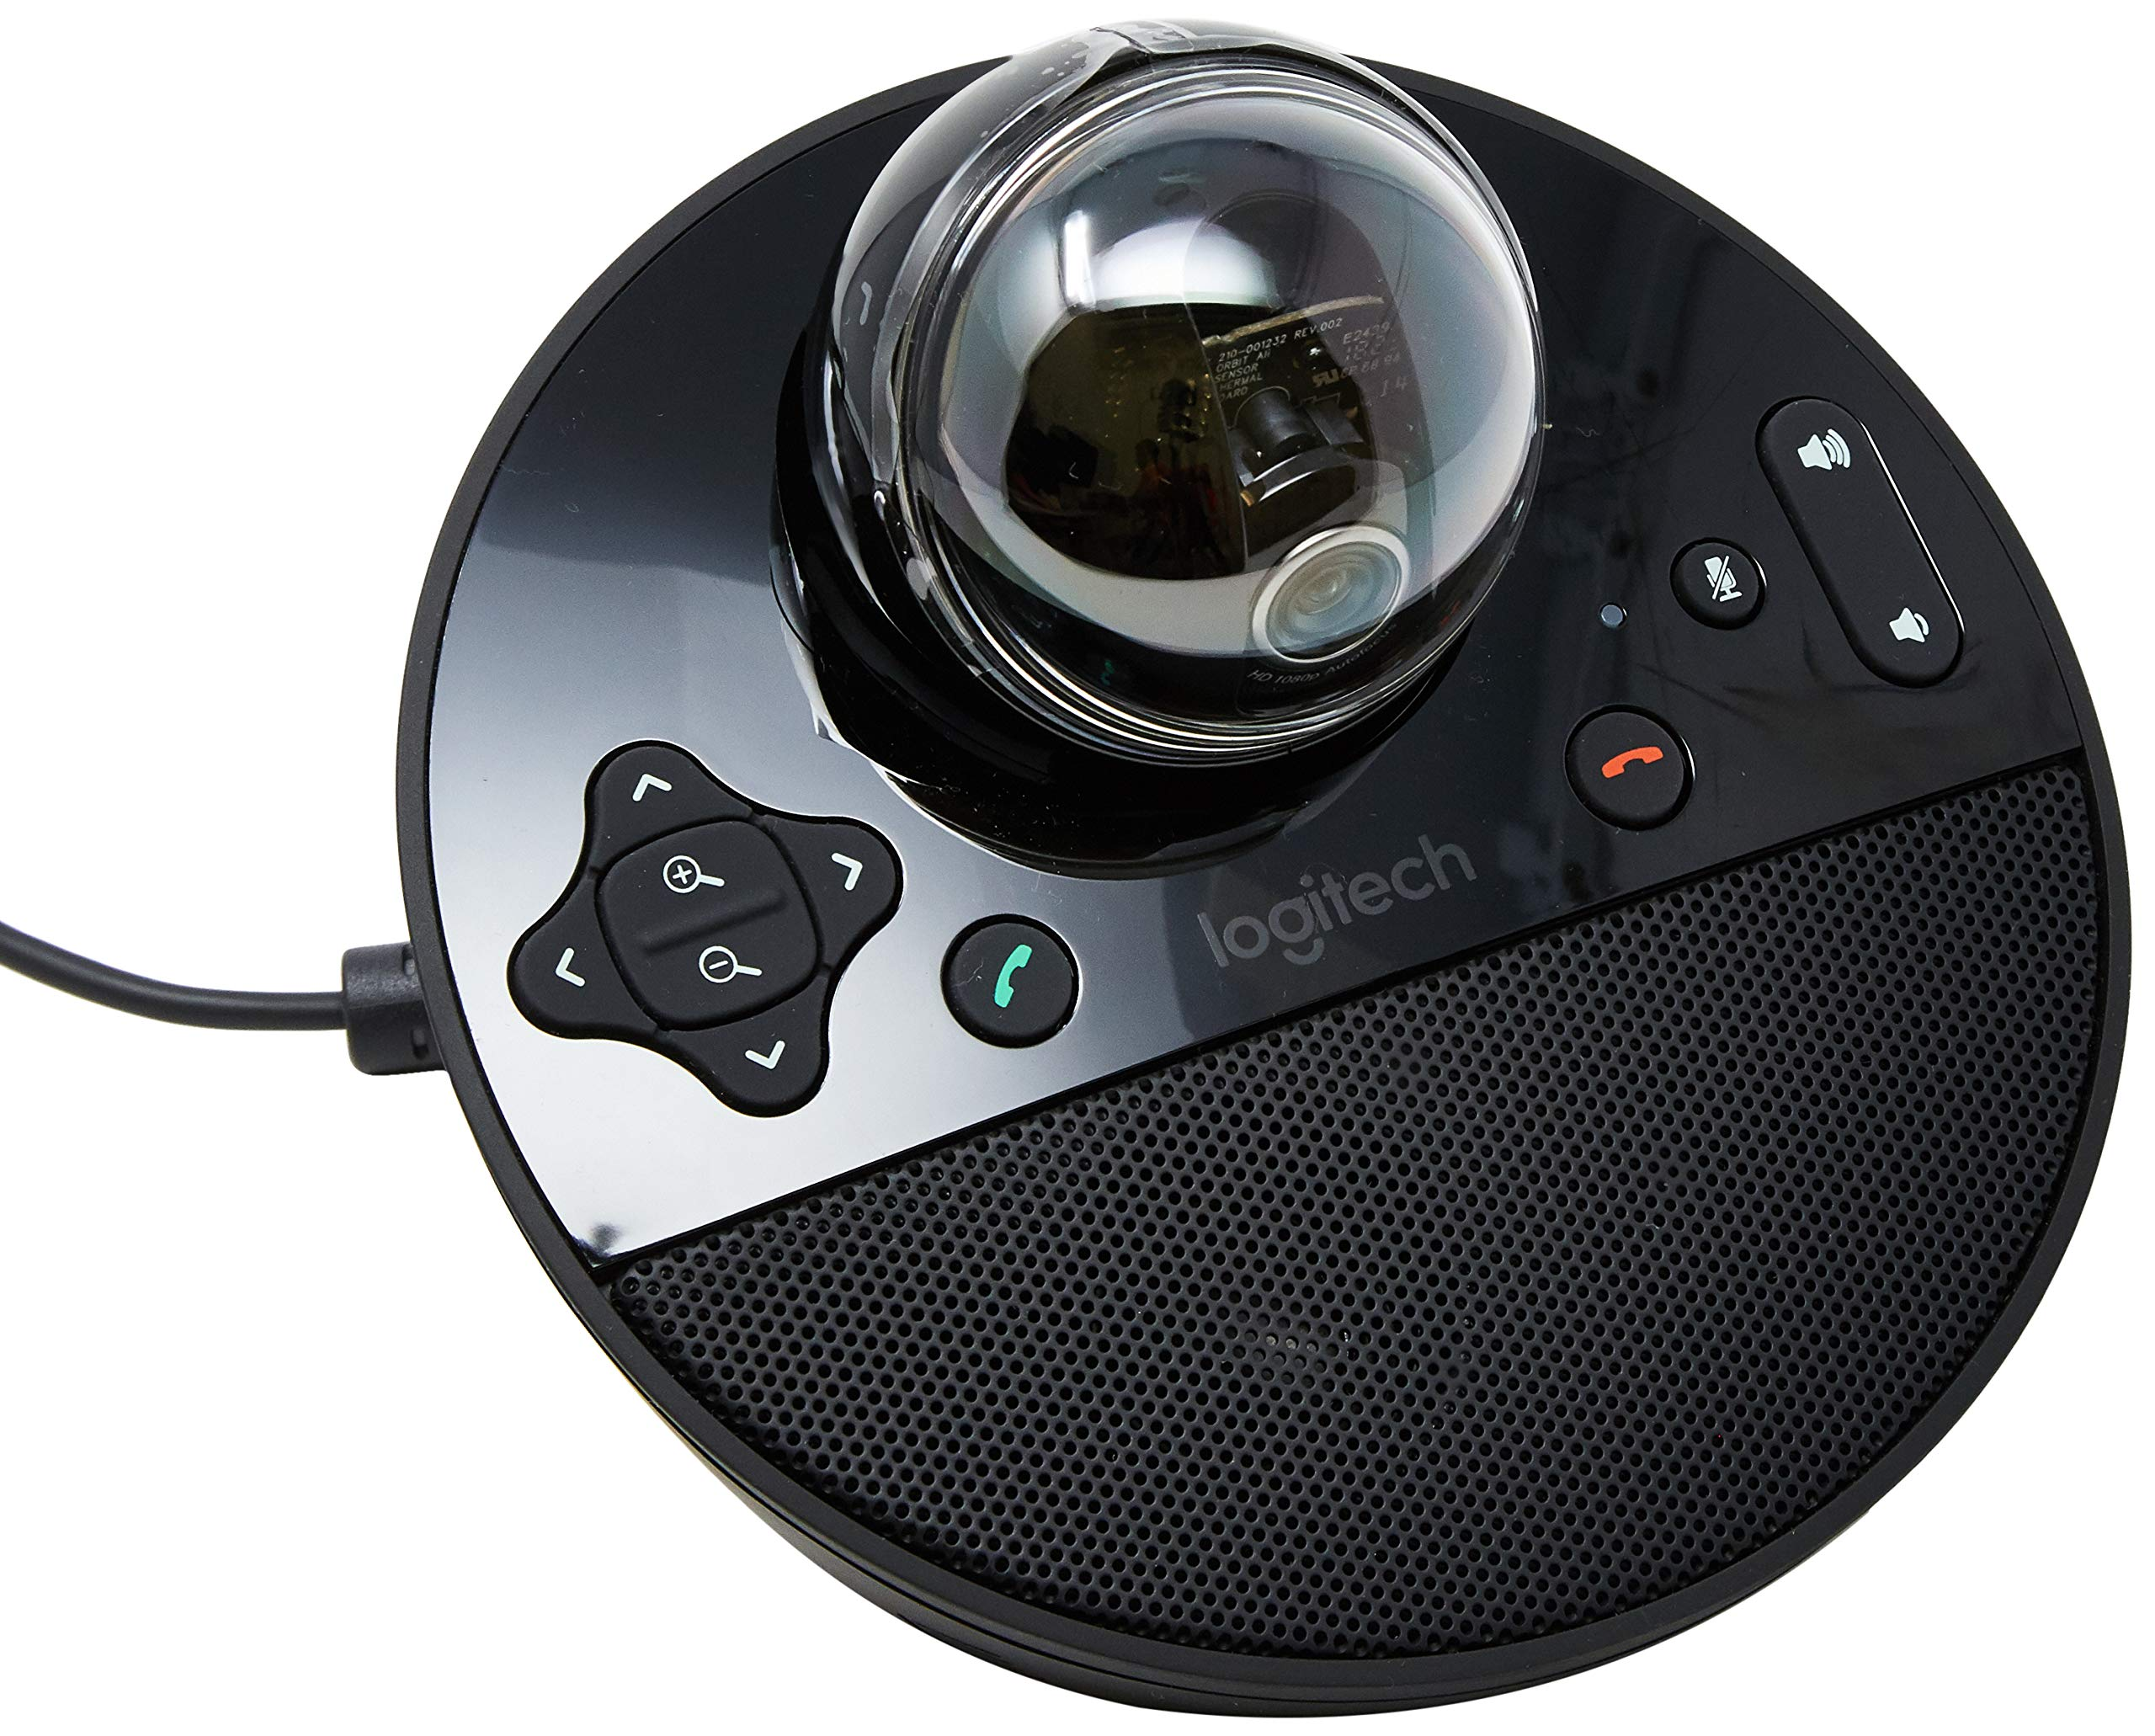 Logitech Conference Cam BCC950 Video Conference Webcam, HD 1080p Camera with Built-In Speakerphone by Logitech